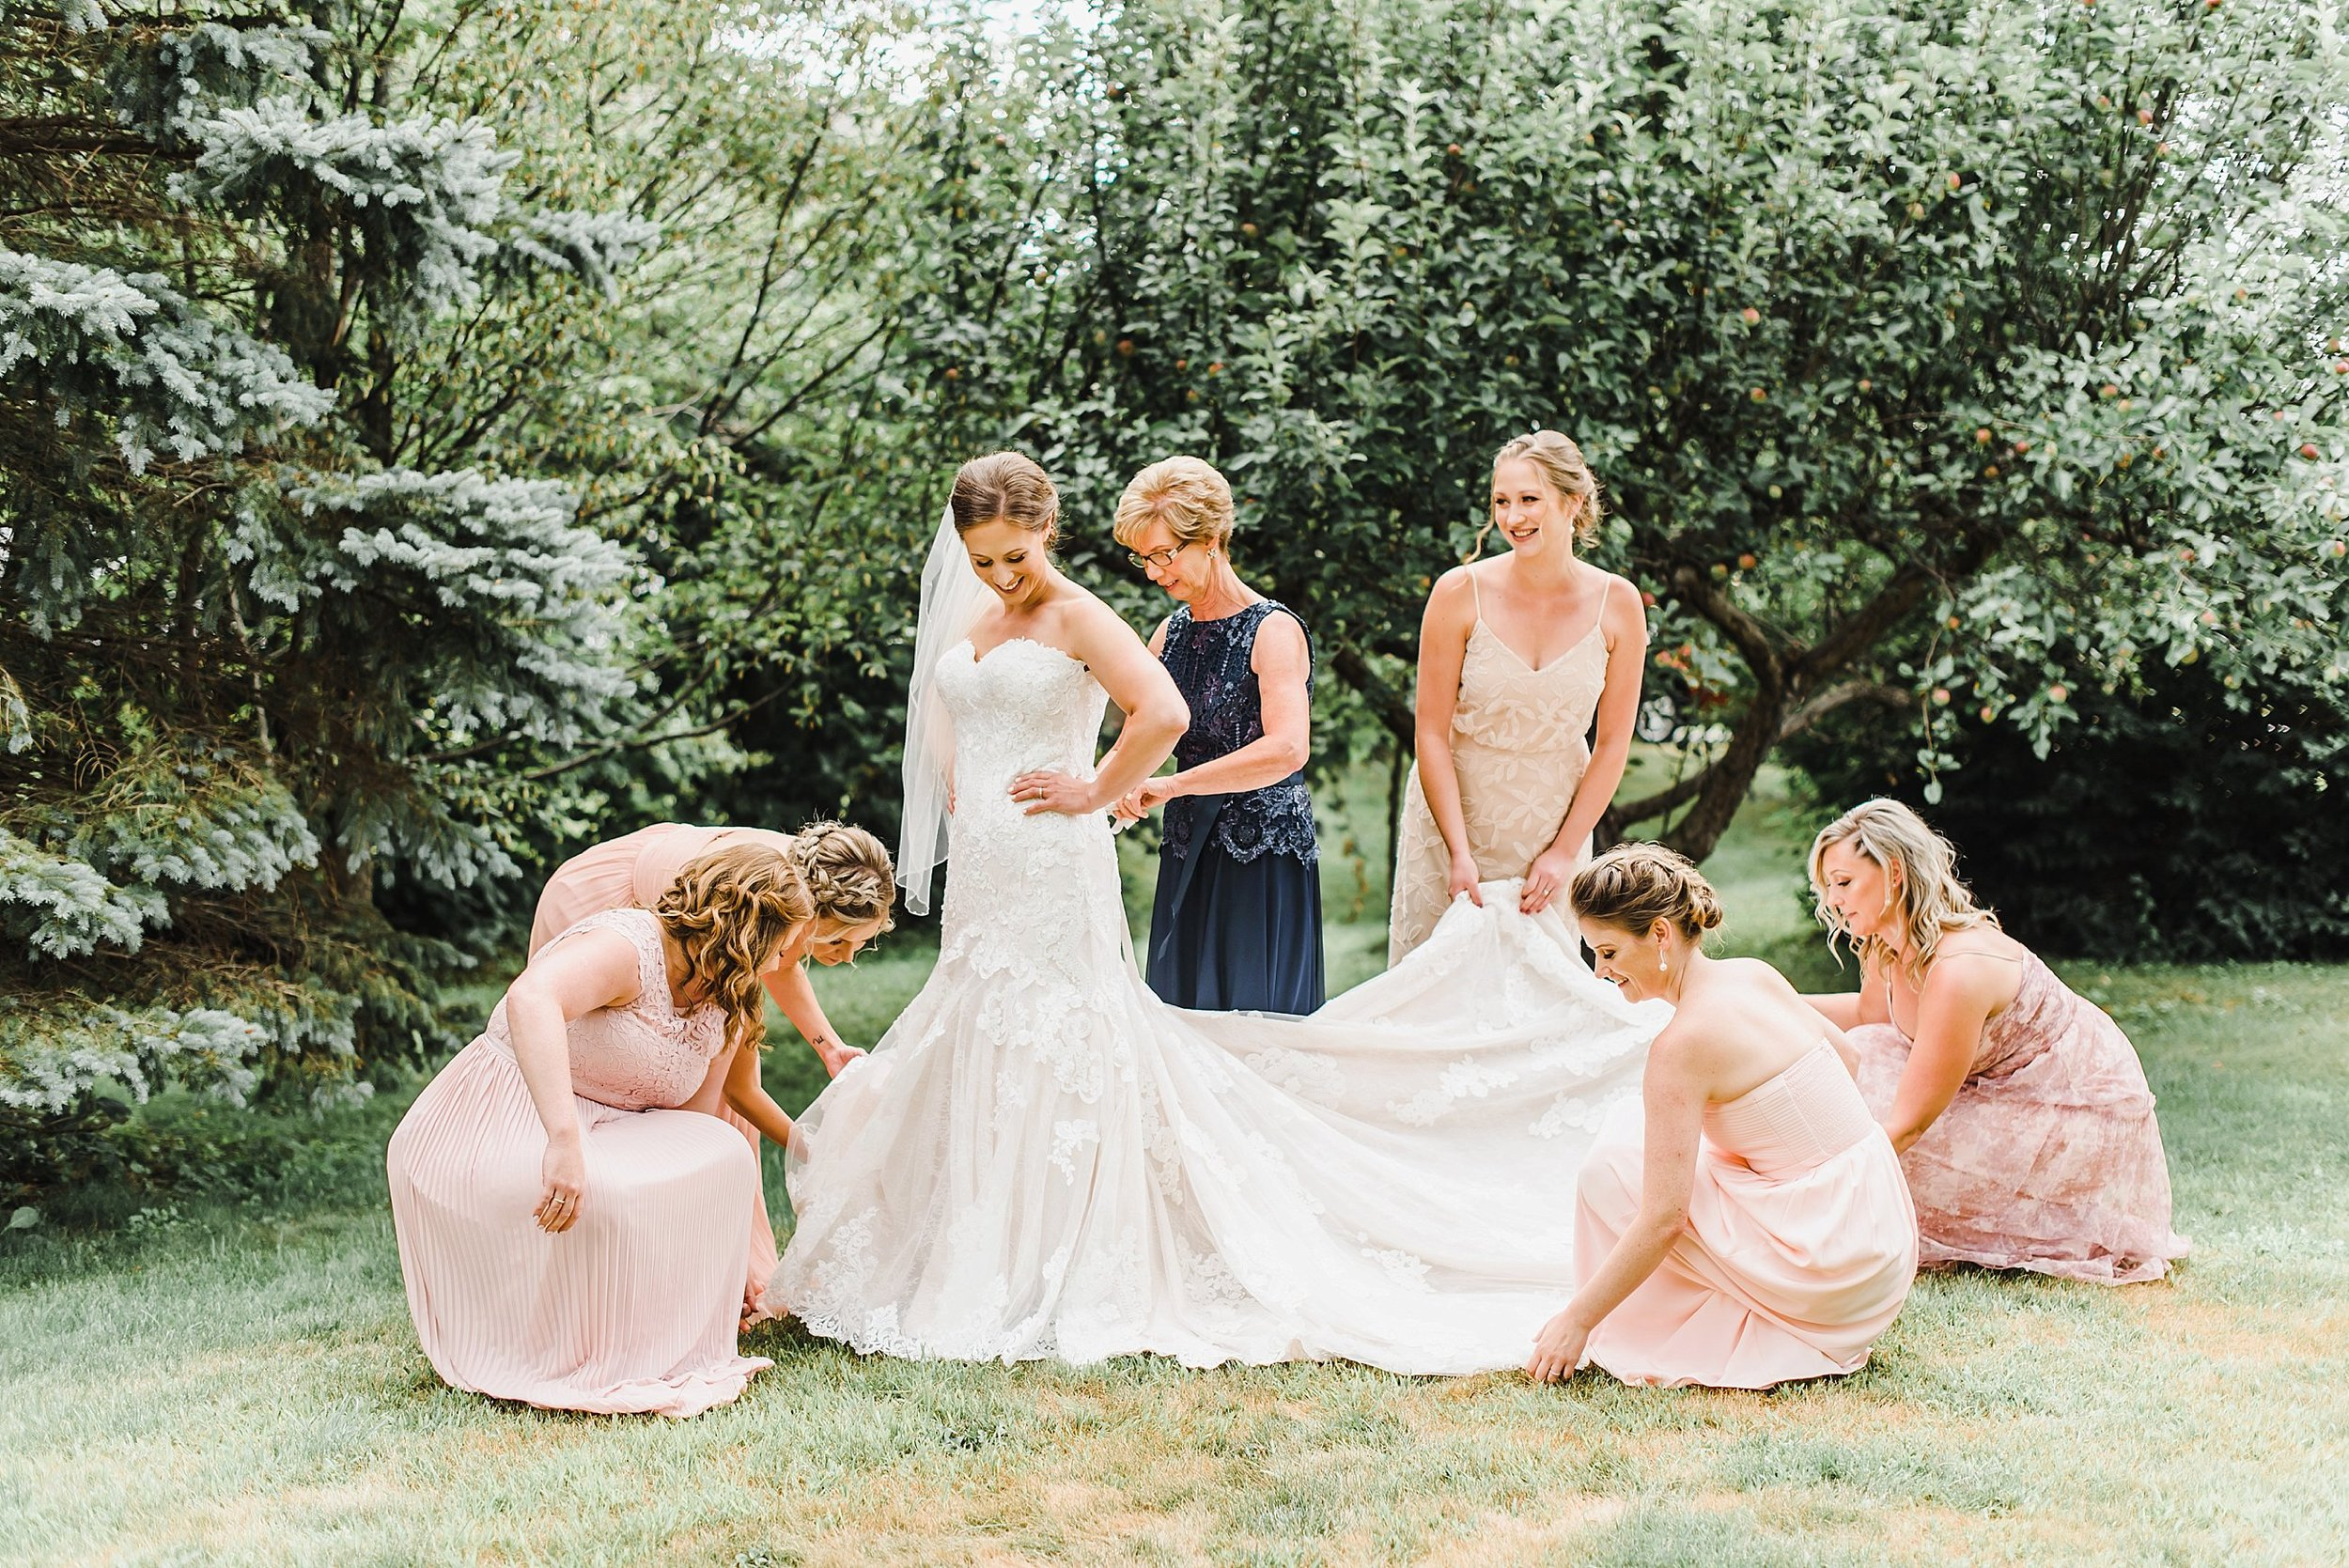 Audra got ready at her parent's home in the country, so we took advantage of their beautiful backyard to capture her 'getting ready' moments with her mom and best friends!